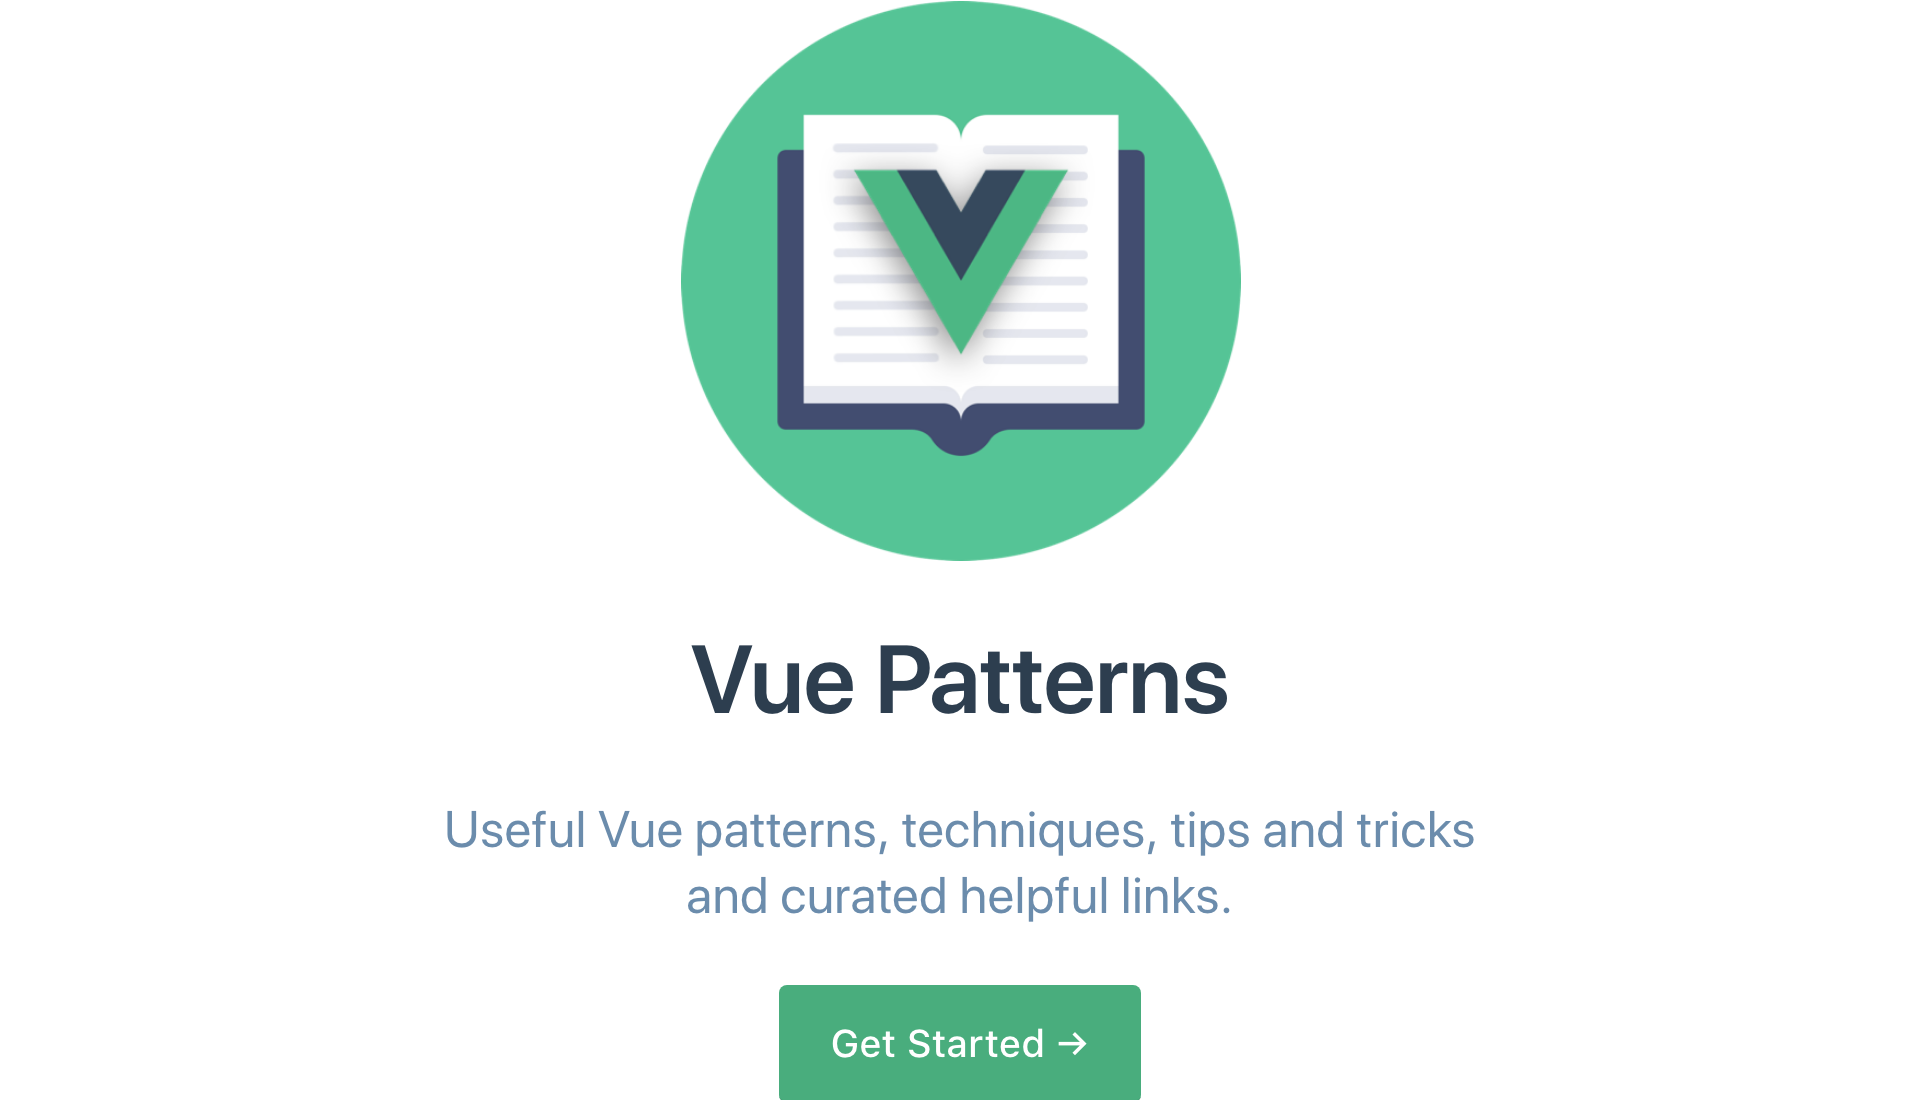 Vue Patterns